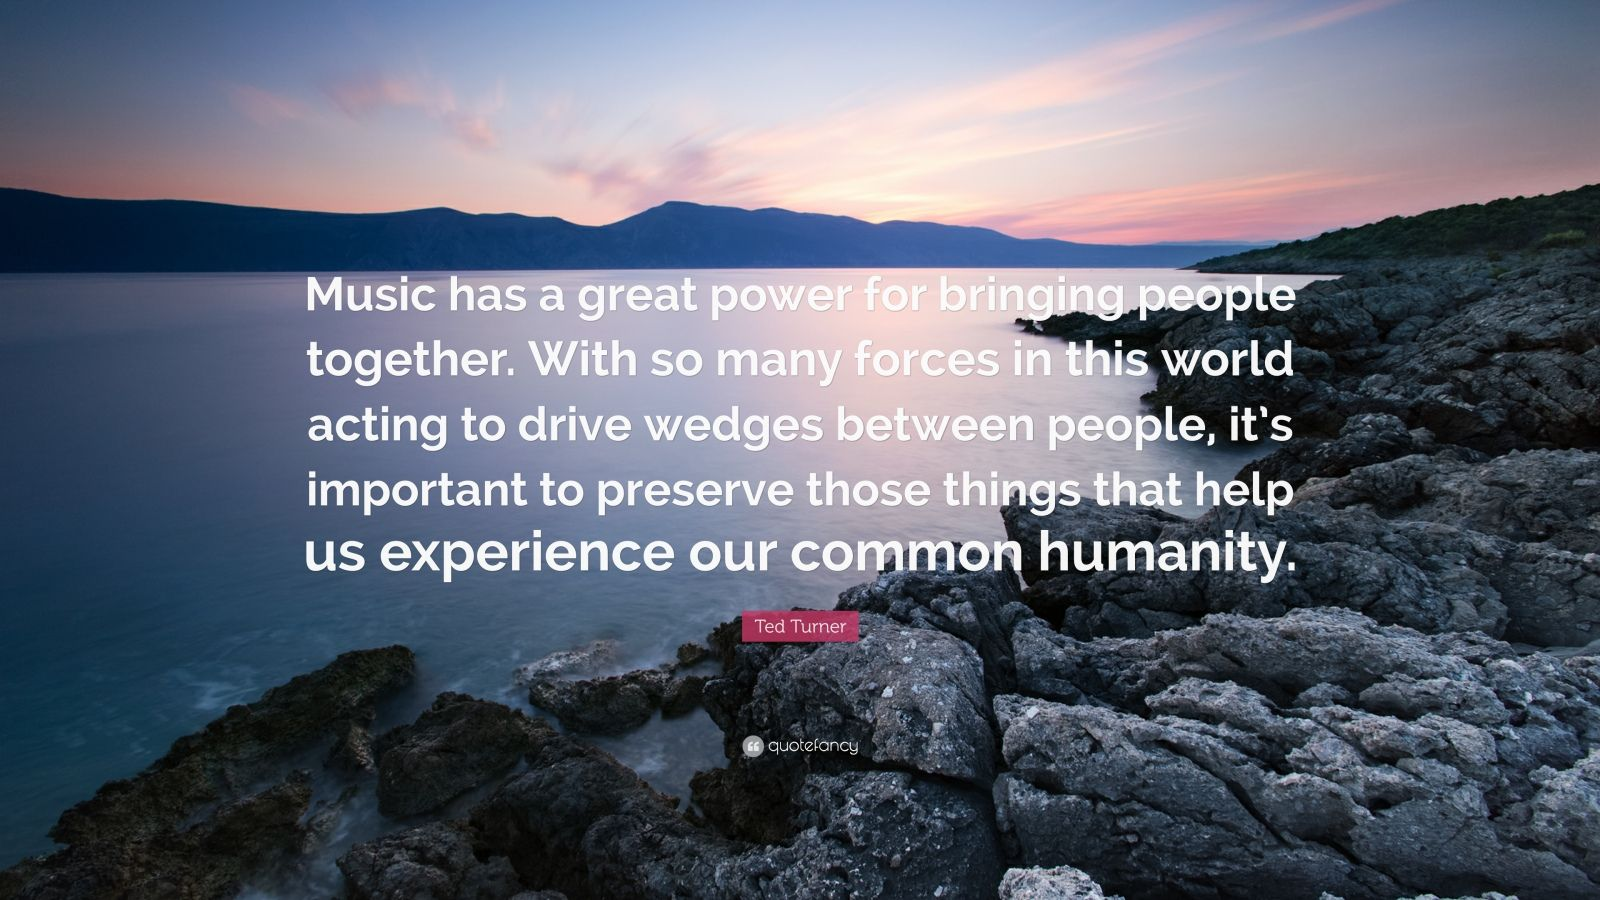 """Ted Turner Quote: """"Music has a great power for bringing people together. With so many forces in this world acting to drive wedges between people, it's important to preserve those things that help us experience our common humanity."""""""